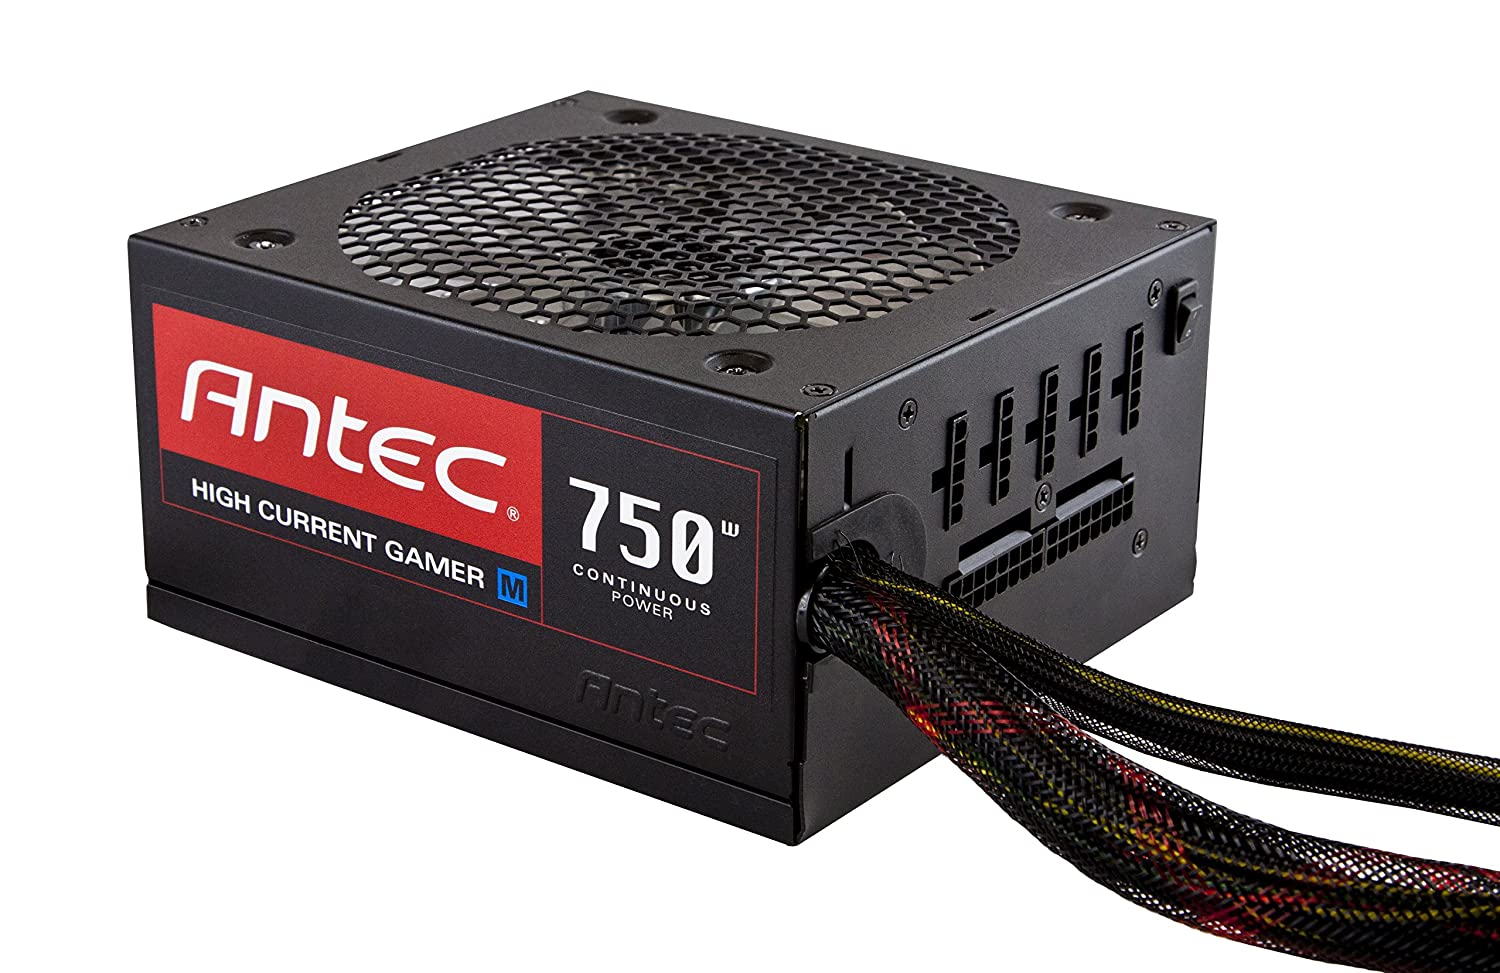 Antec High Current Gamer Atx12v Eps12v 750 Power Supply Hcg M Computers Accessories